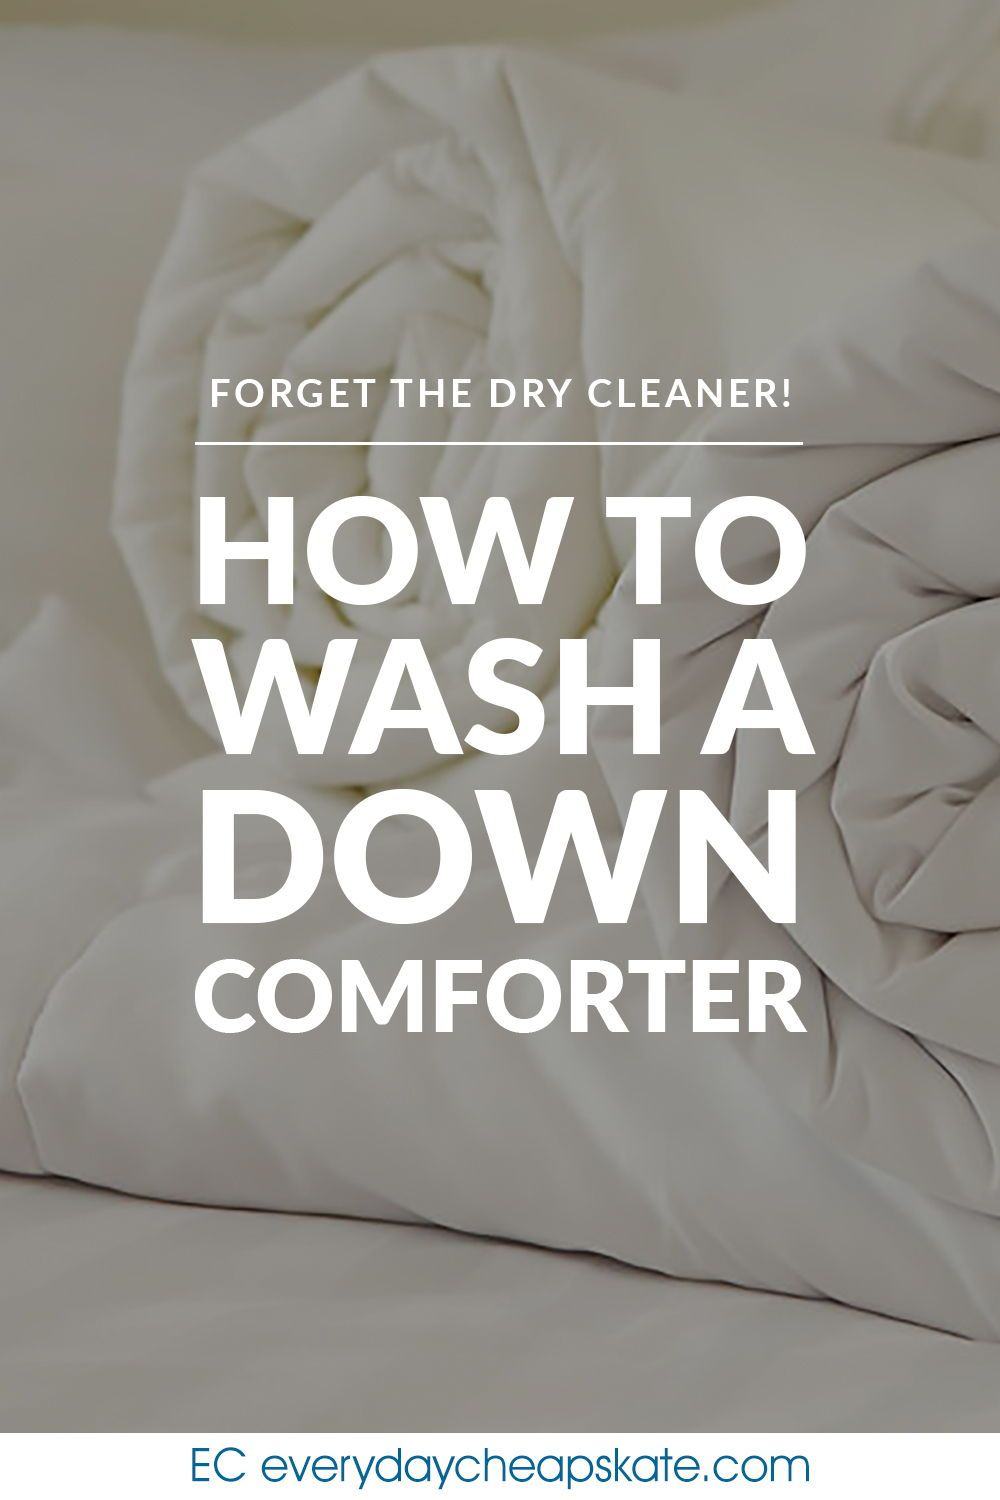 Forget The Dry Cleaner How To Wash A Down Comforter In 2020 Washing Down Comforter Down Comforter Comforters